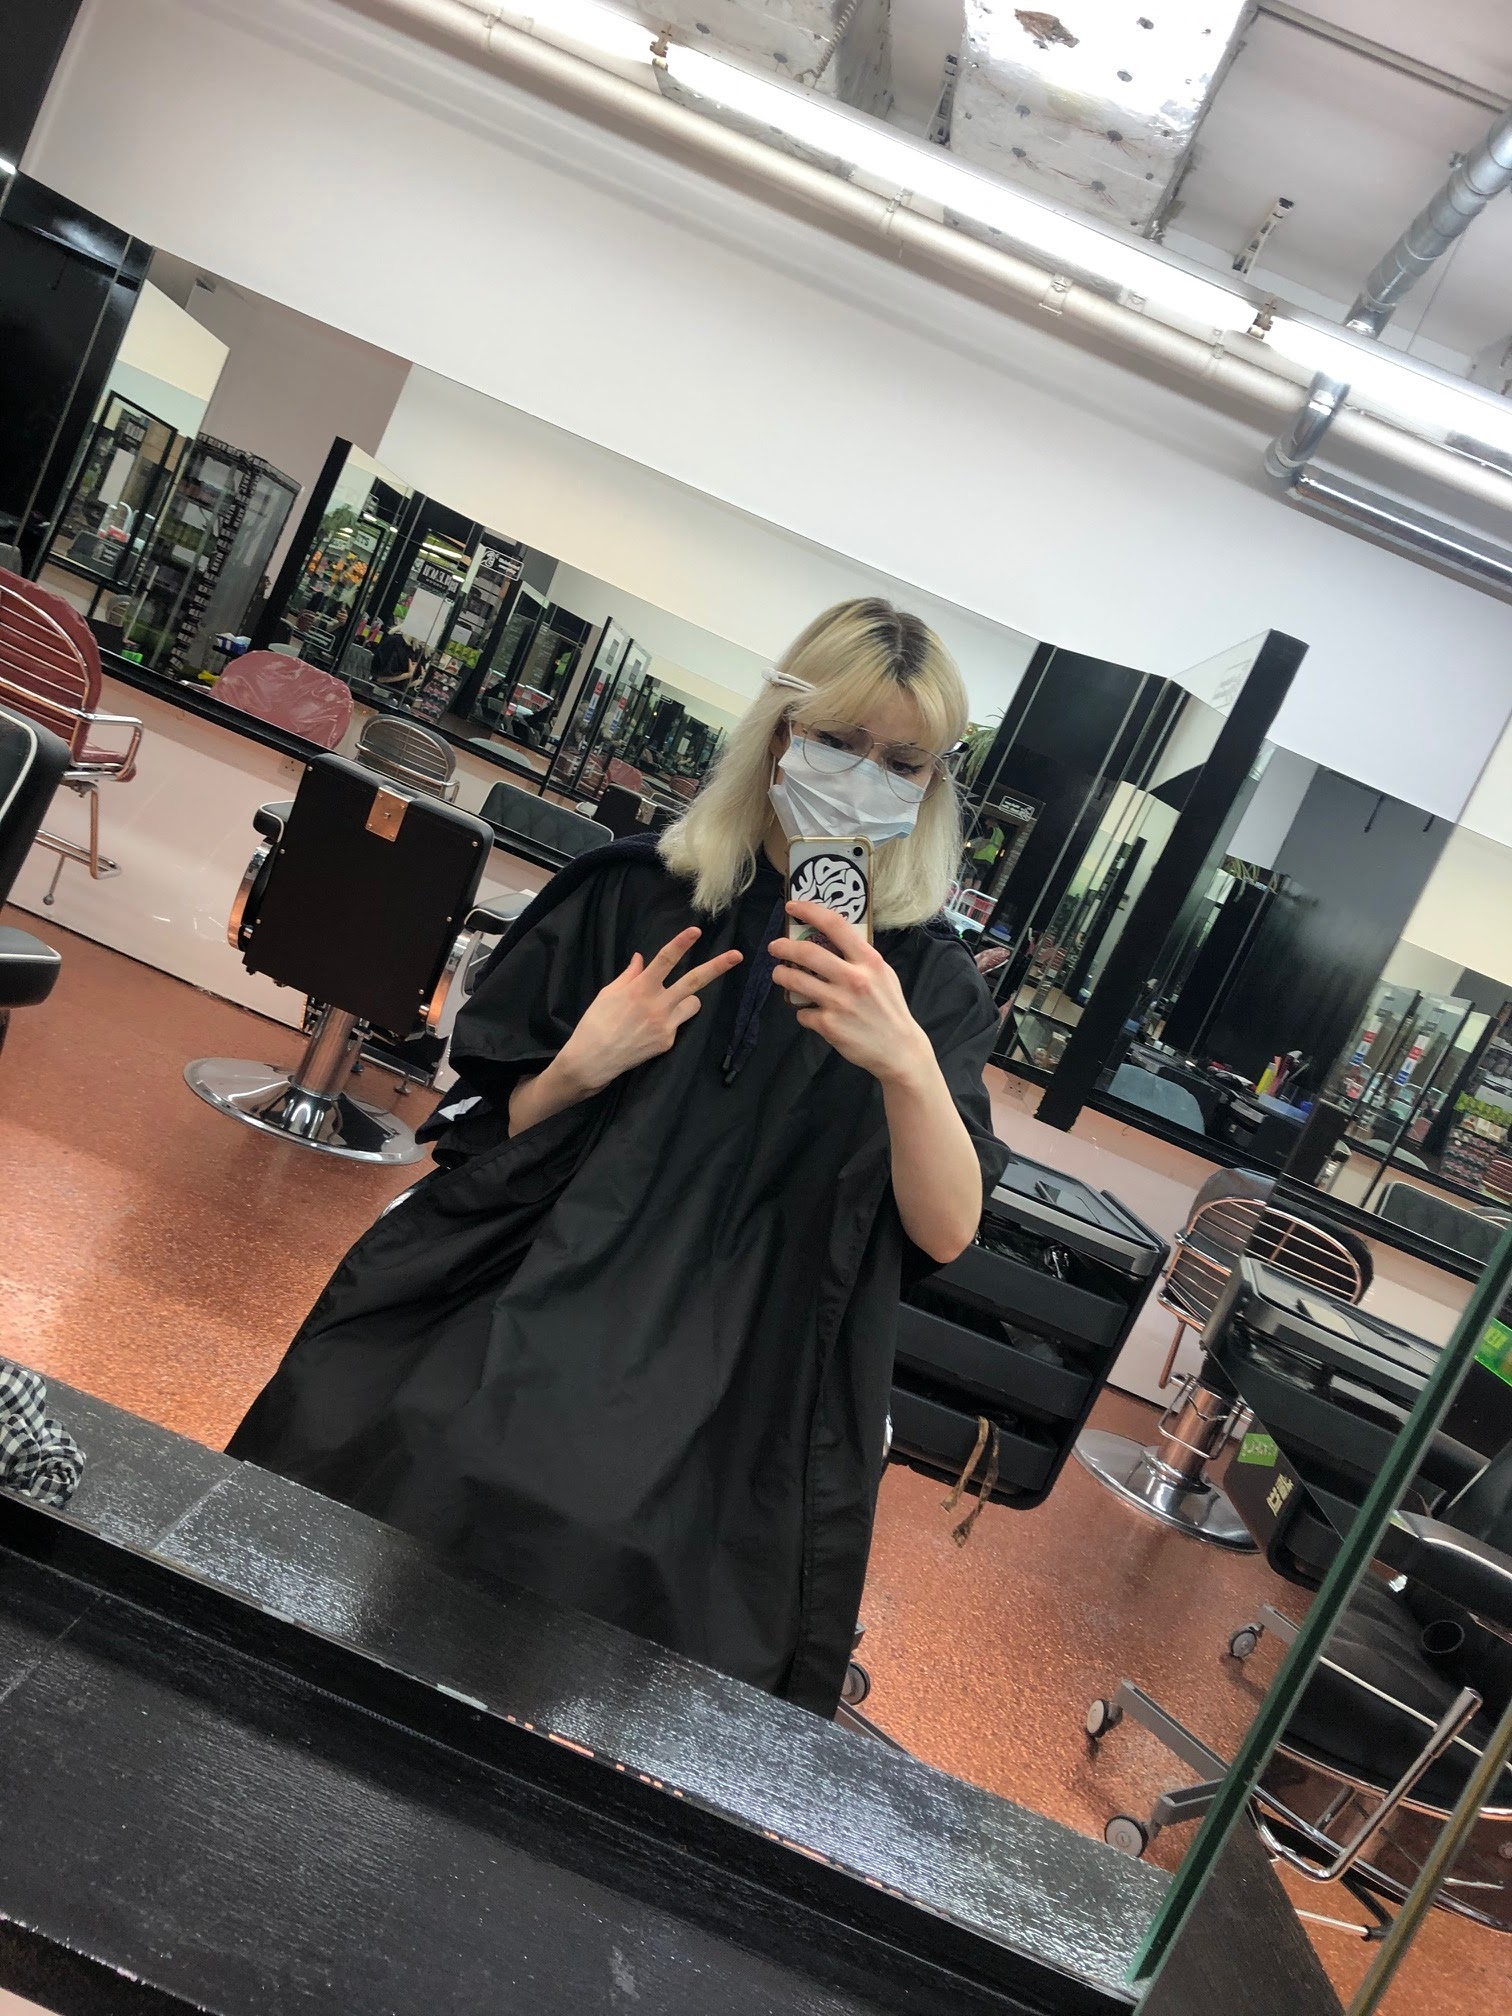 me at Bleach before getting my hair done- my hair was a platinum blonde and I had about an inch of dark brown roots